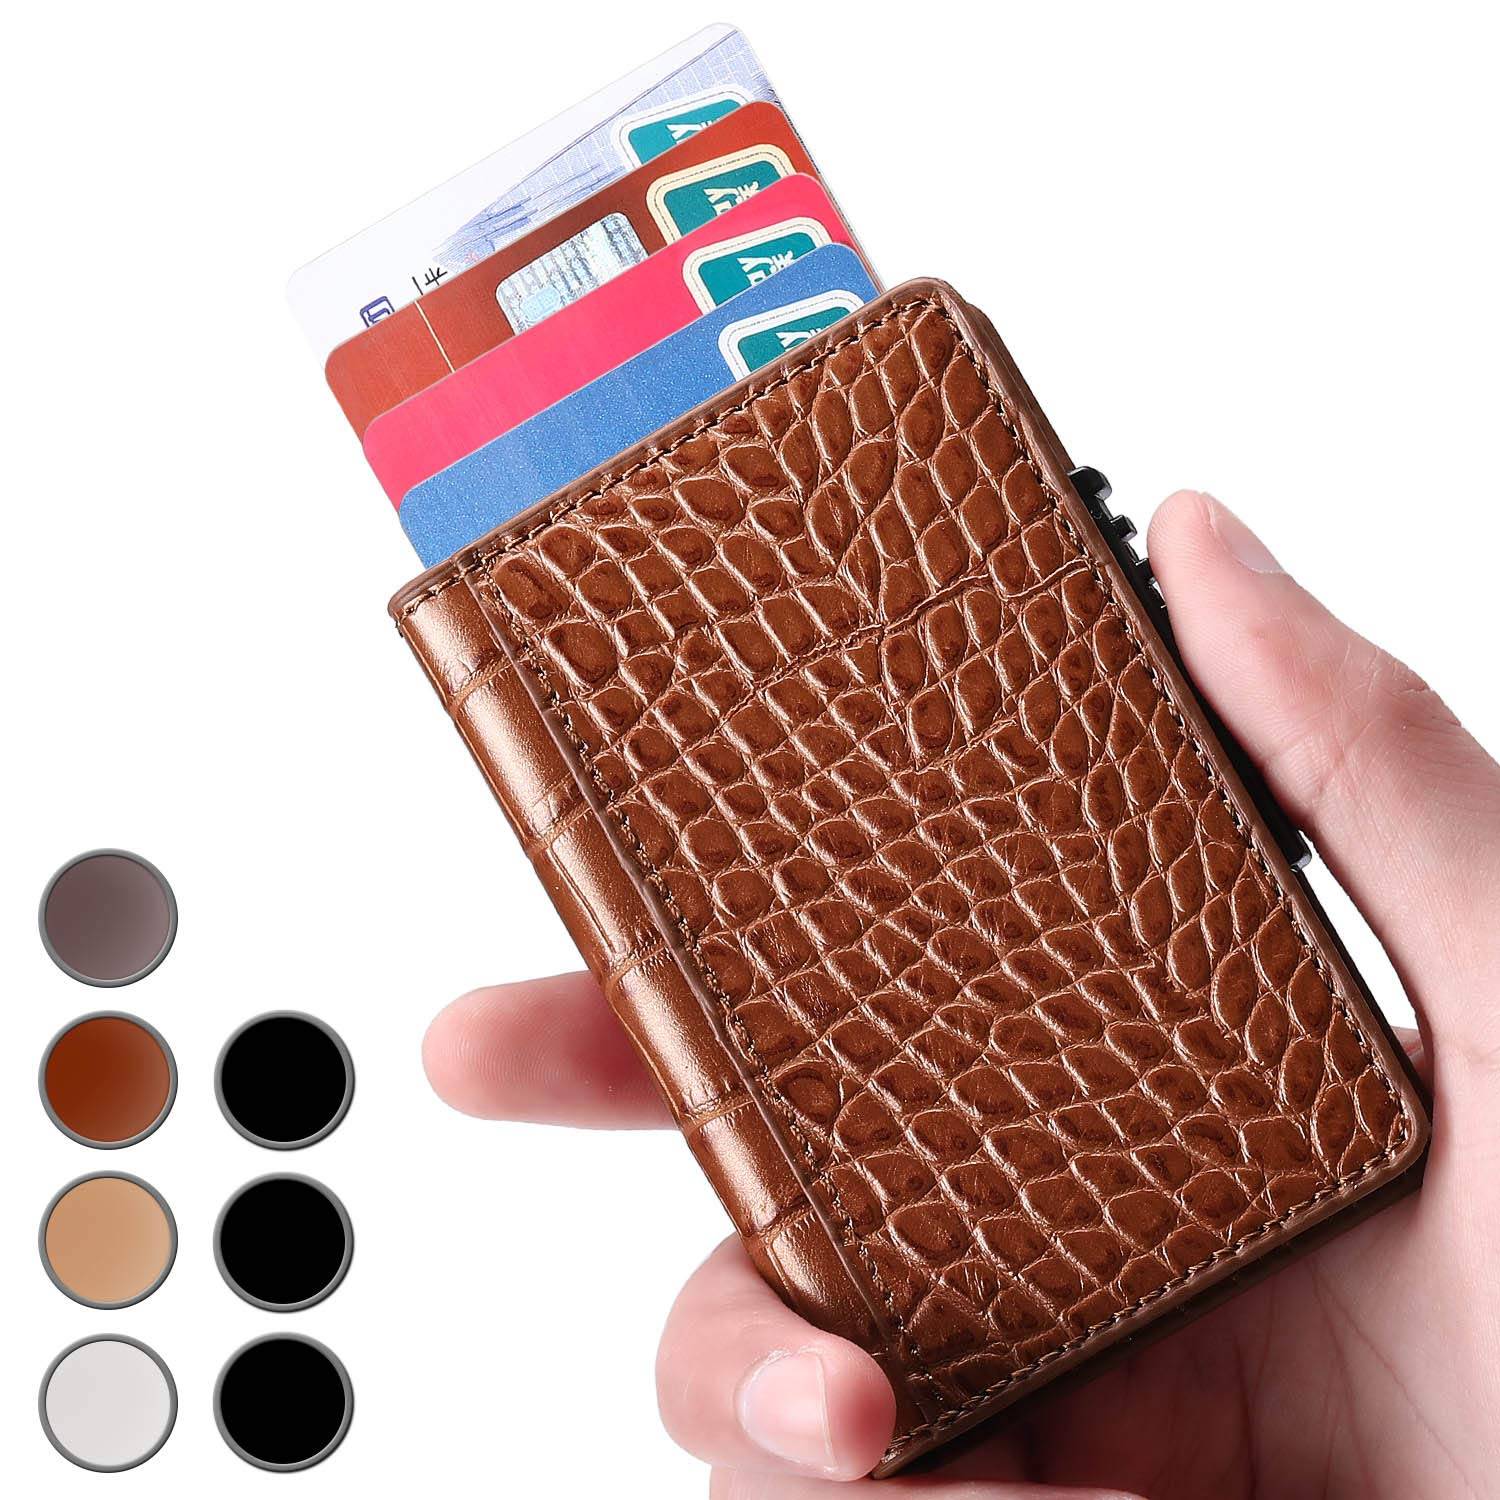 Brooben Credit Card Holder RFID Slim Leather Wallet Auto Pop-up Coffee CC1-Coffee